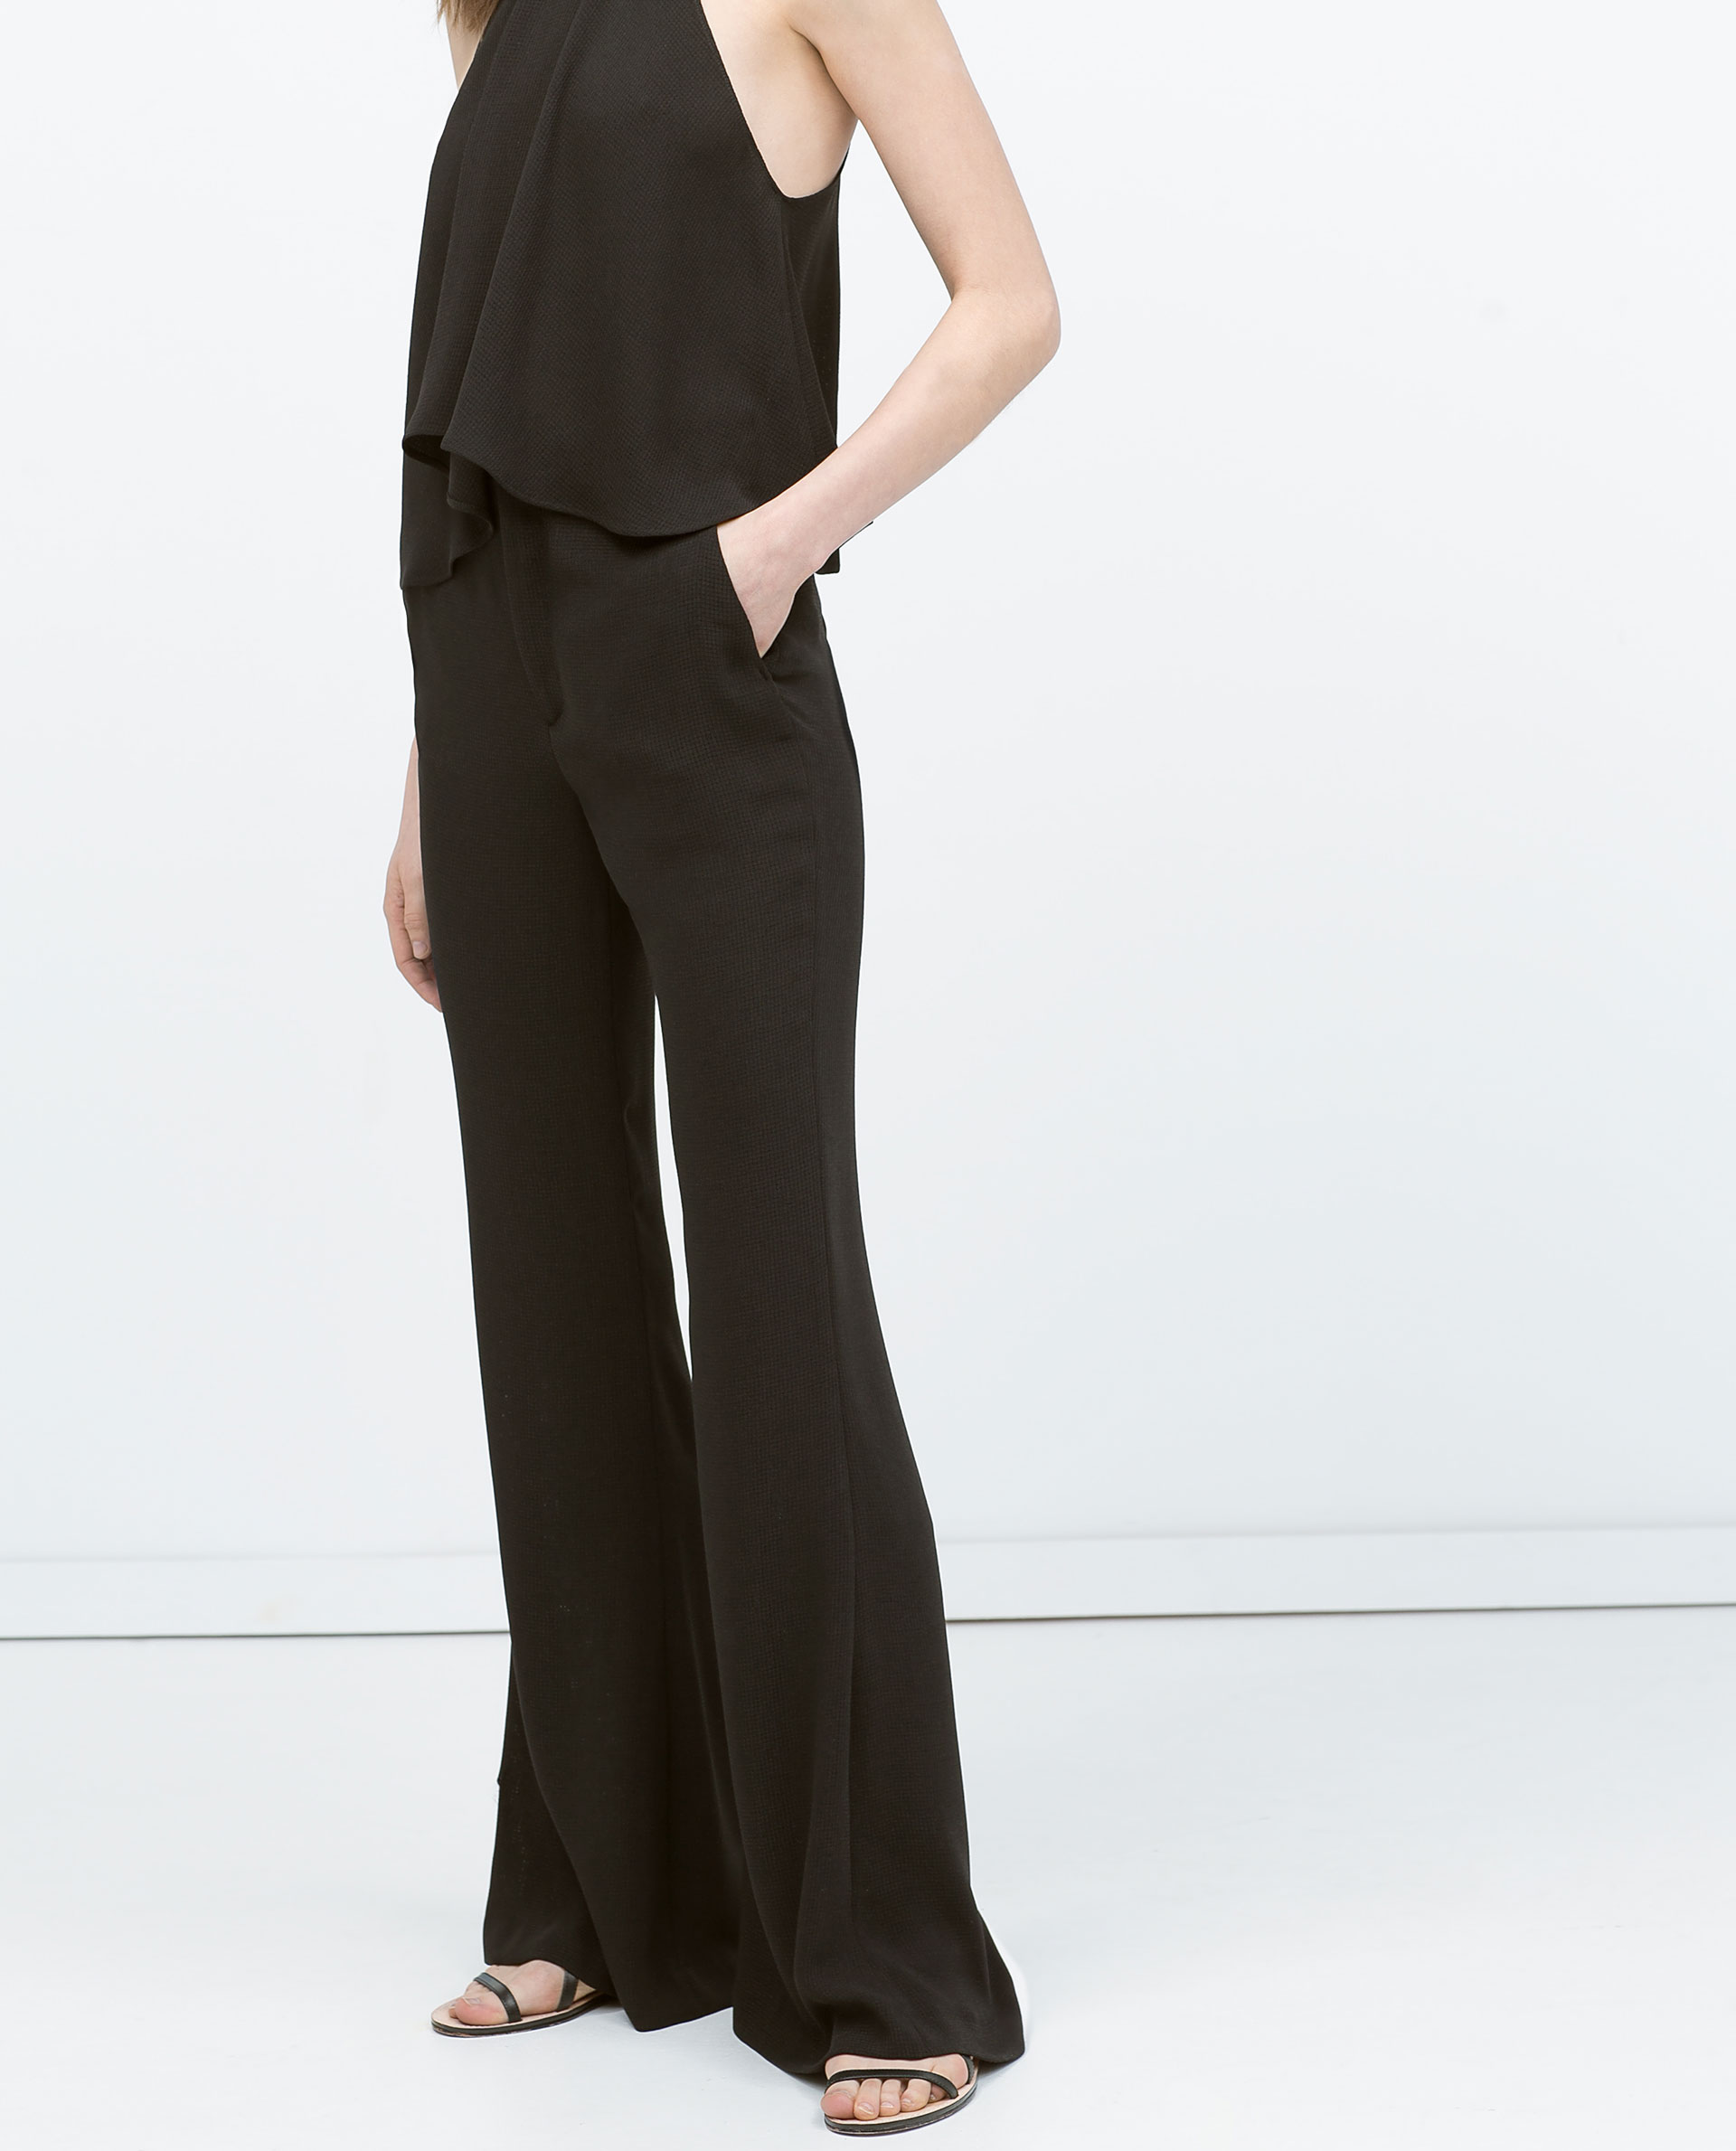 LOOSE FLARED TROUSERS - Flowing - Trousers - WOMAN - SALE ... 8c727794f6a3